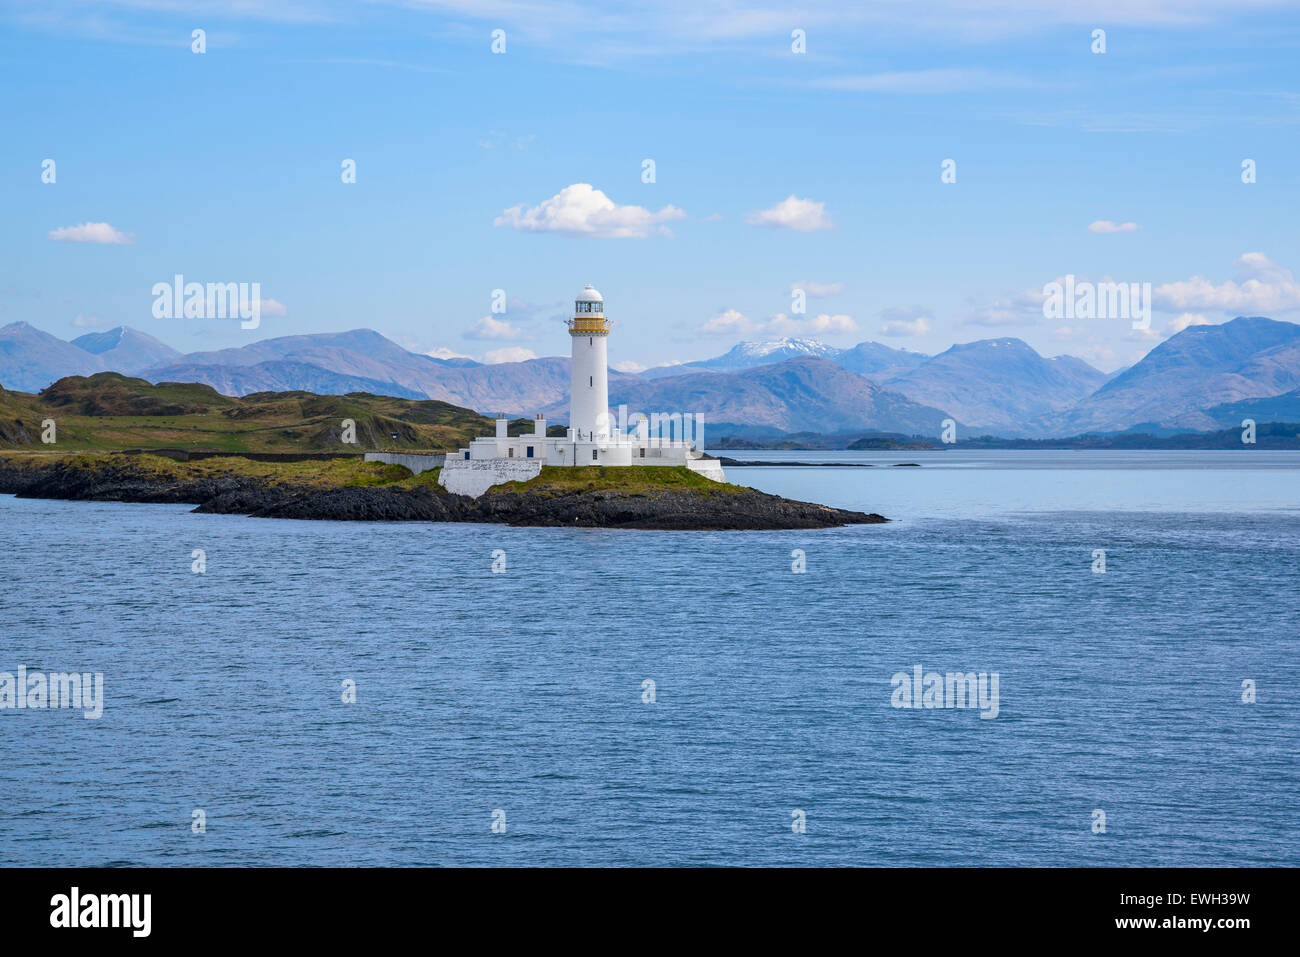 Lighthouse in Sound of Mull, Hebrides, Argyll and Bute, Scotland - Stock Image